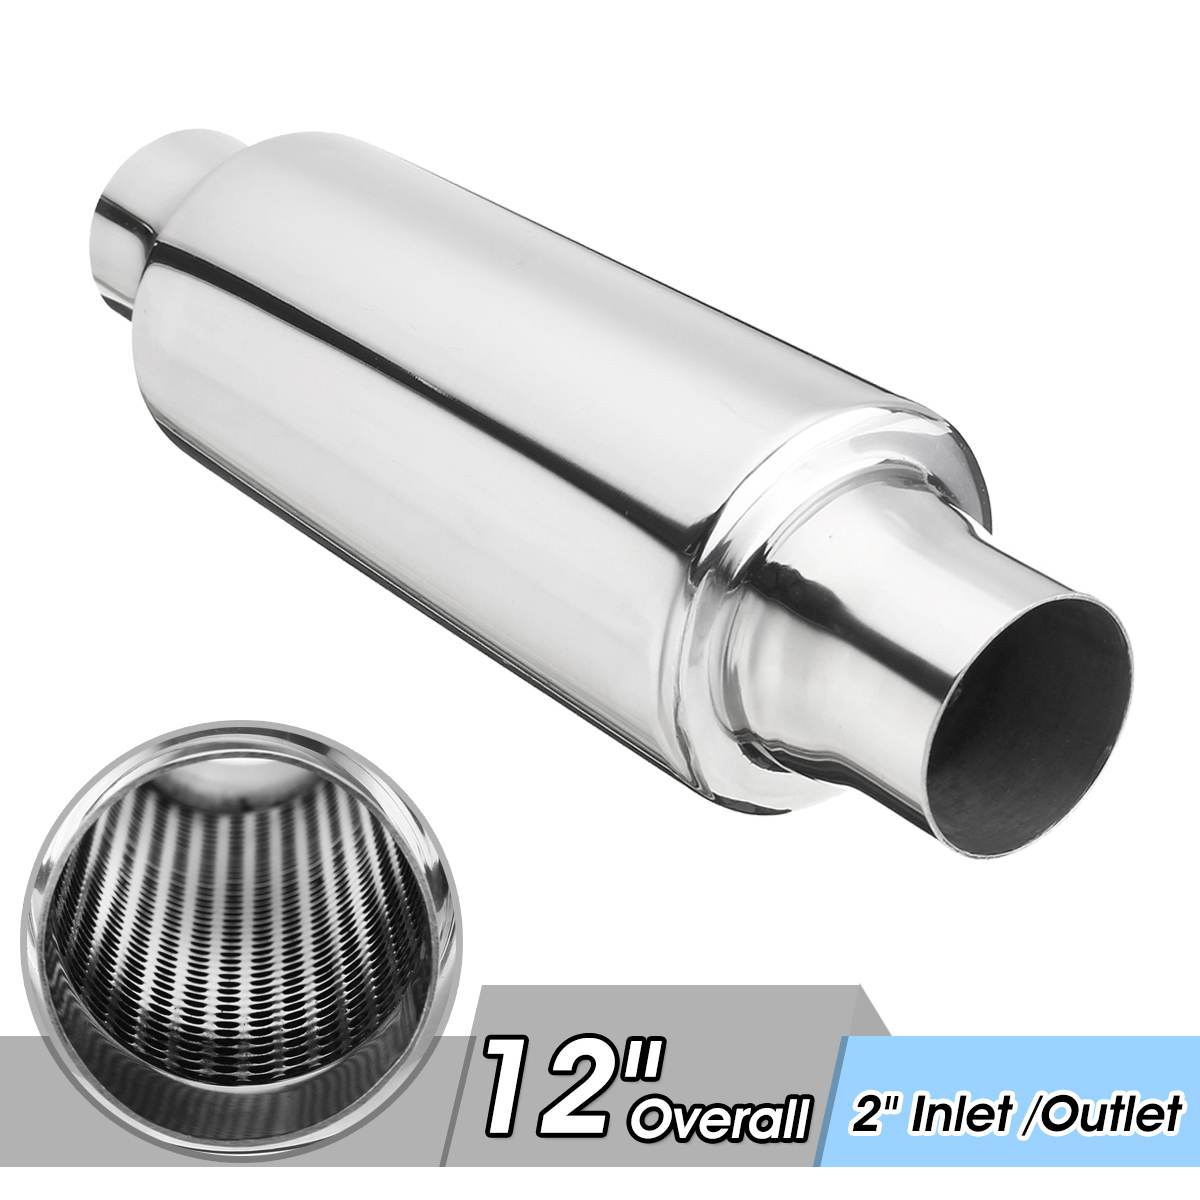 Hot New Universal Stainless Steel Car Exhaust Pipe Muffler Resonator 51mm Inlet/Outlet Exhaust Tip Tube Silencer